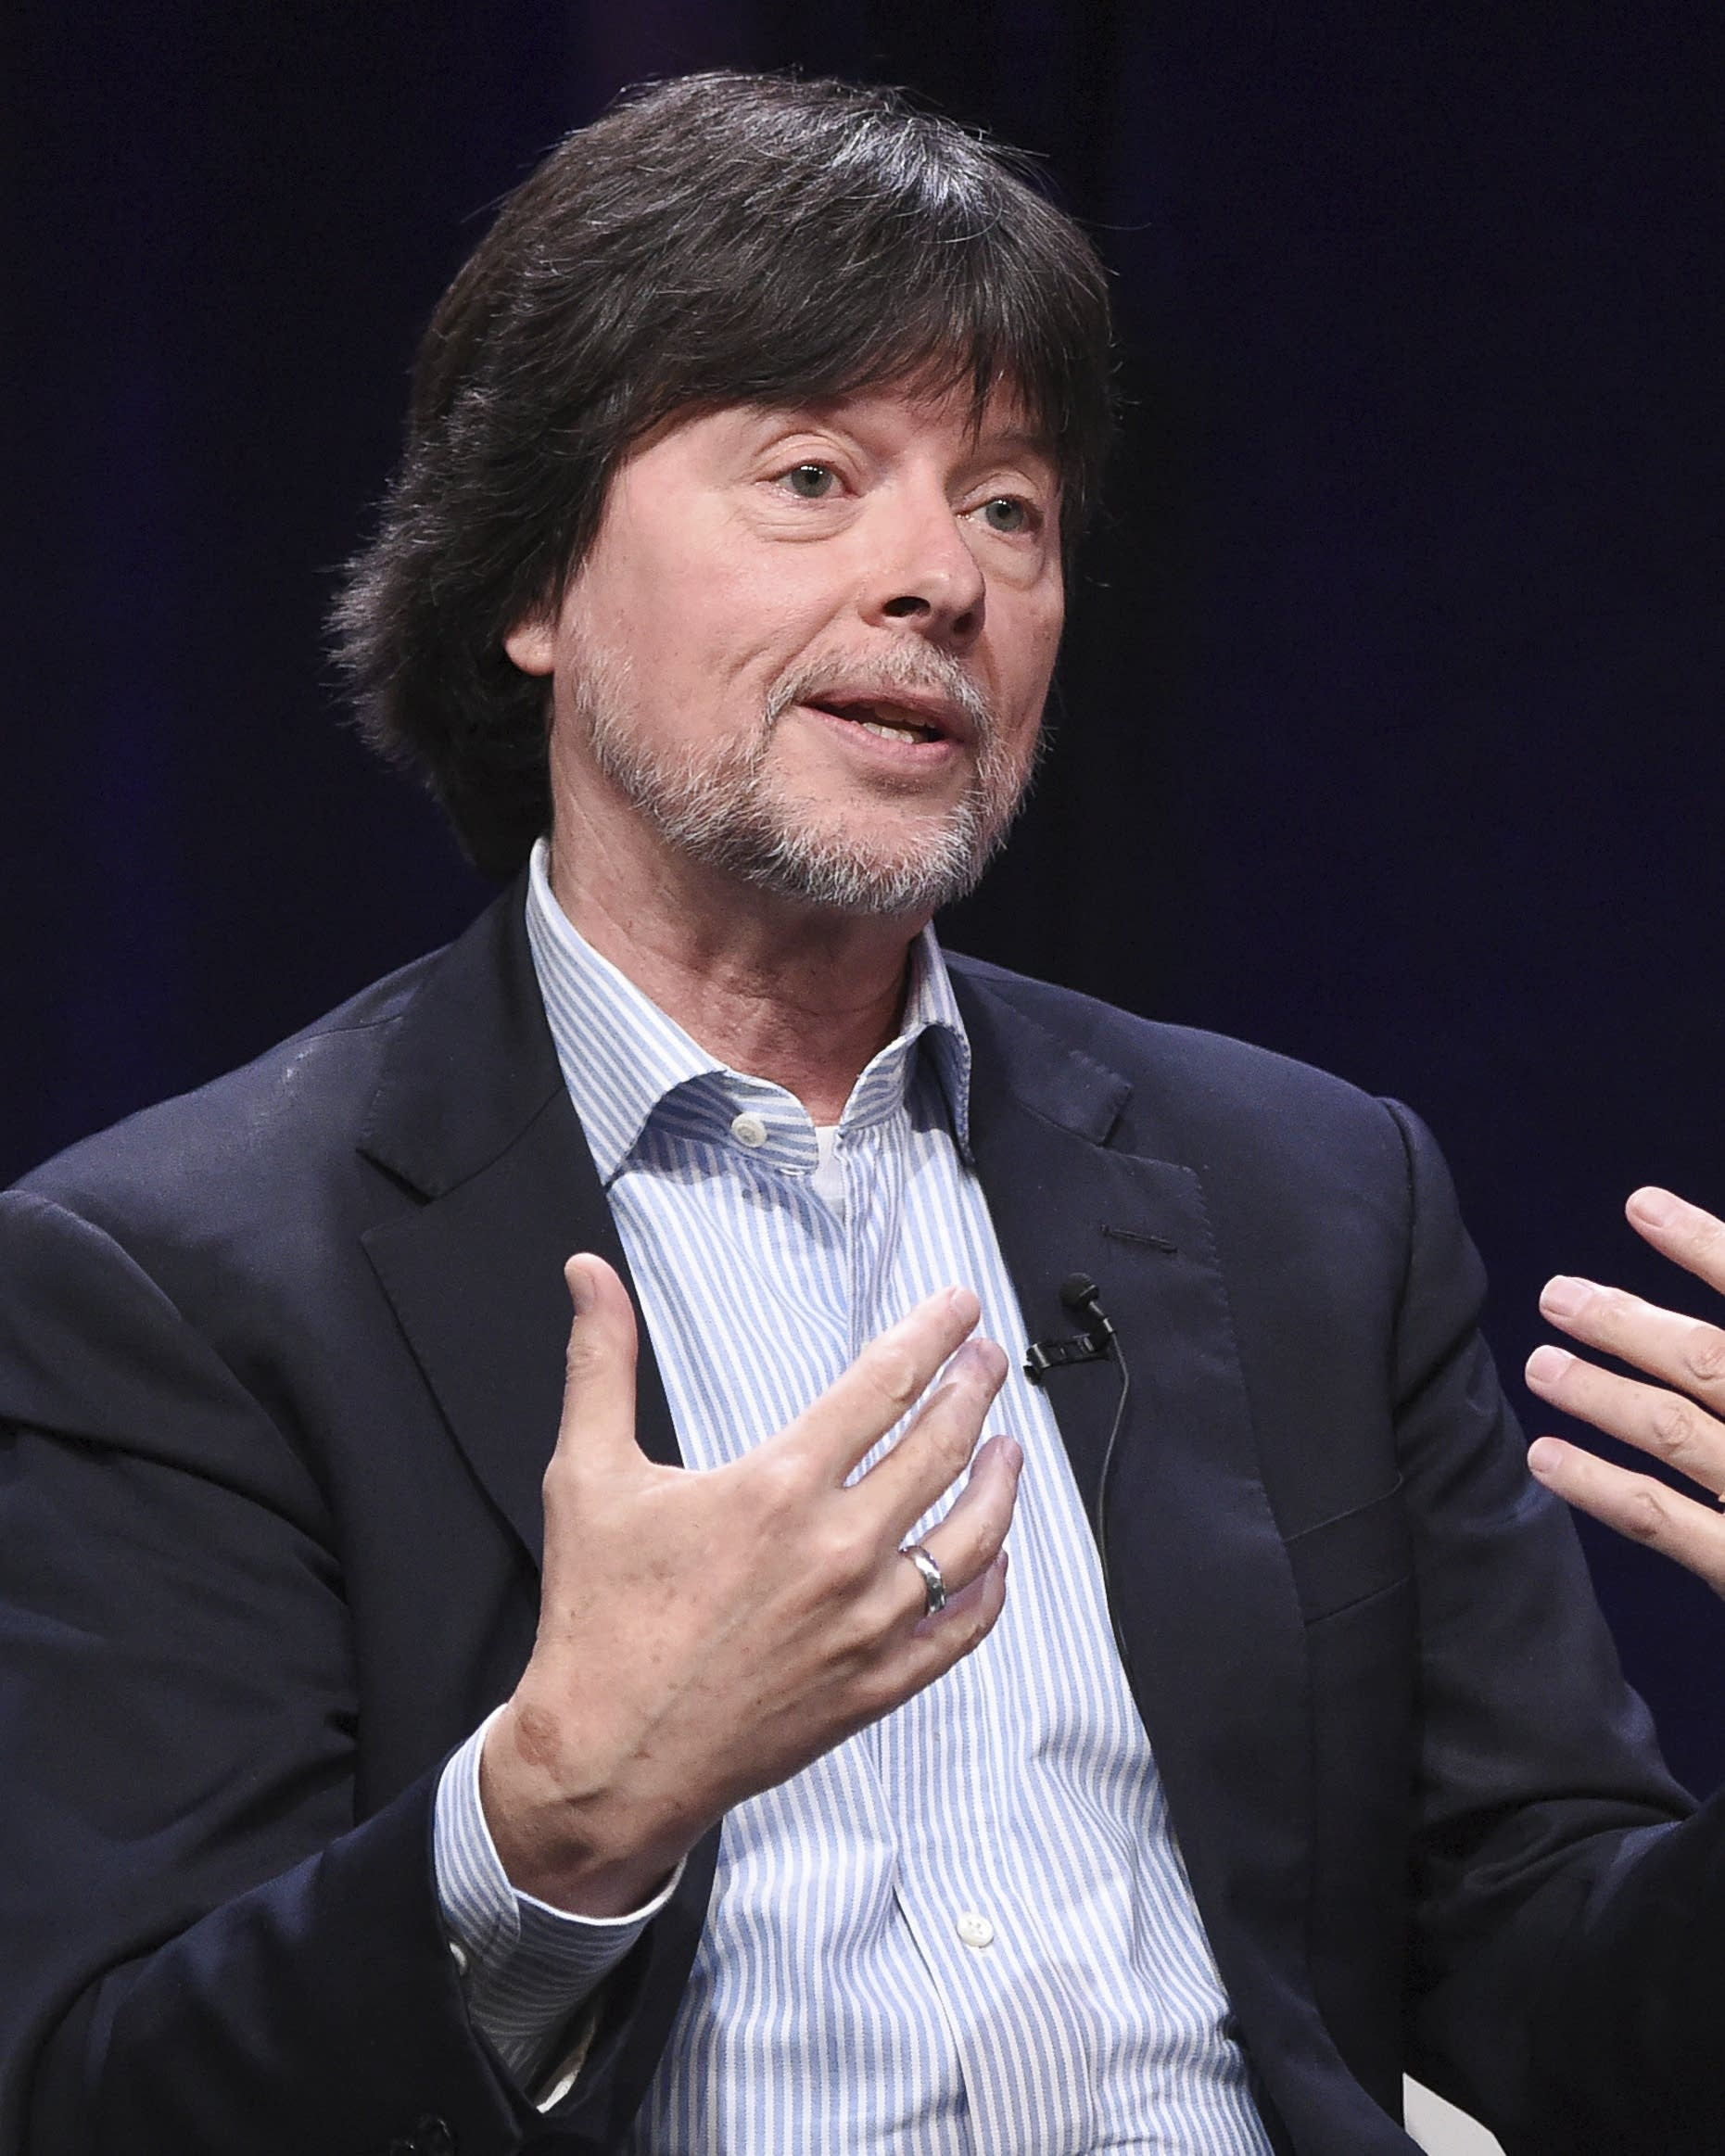 Ken Burns' next documentary is about how great the Mayo Clinic is